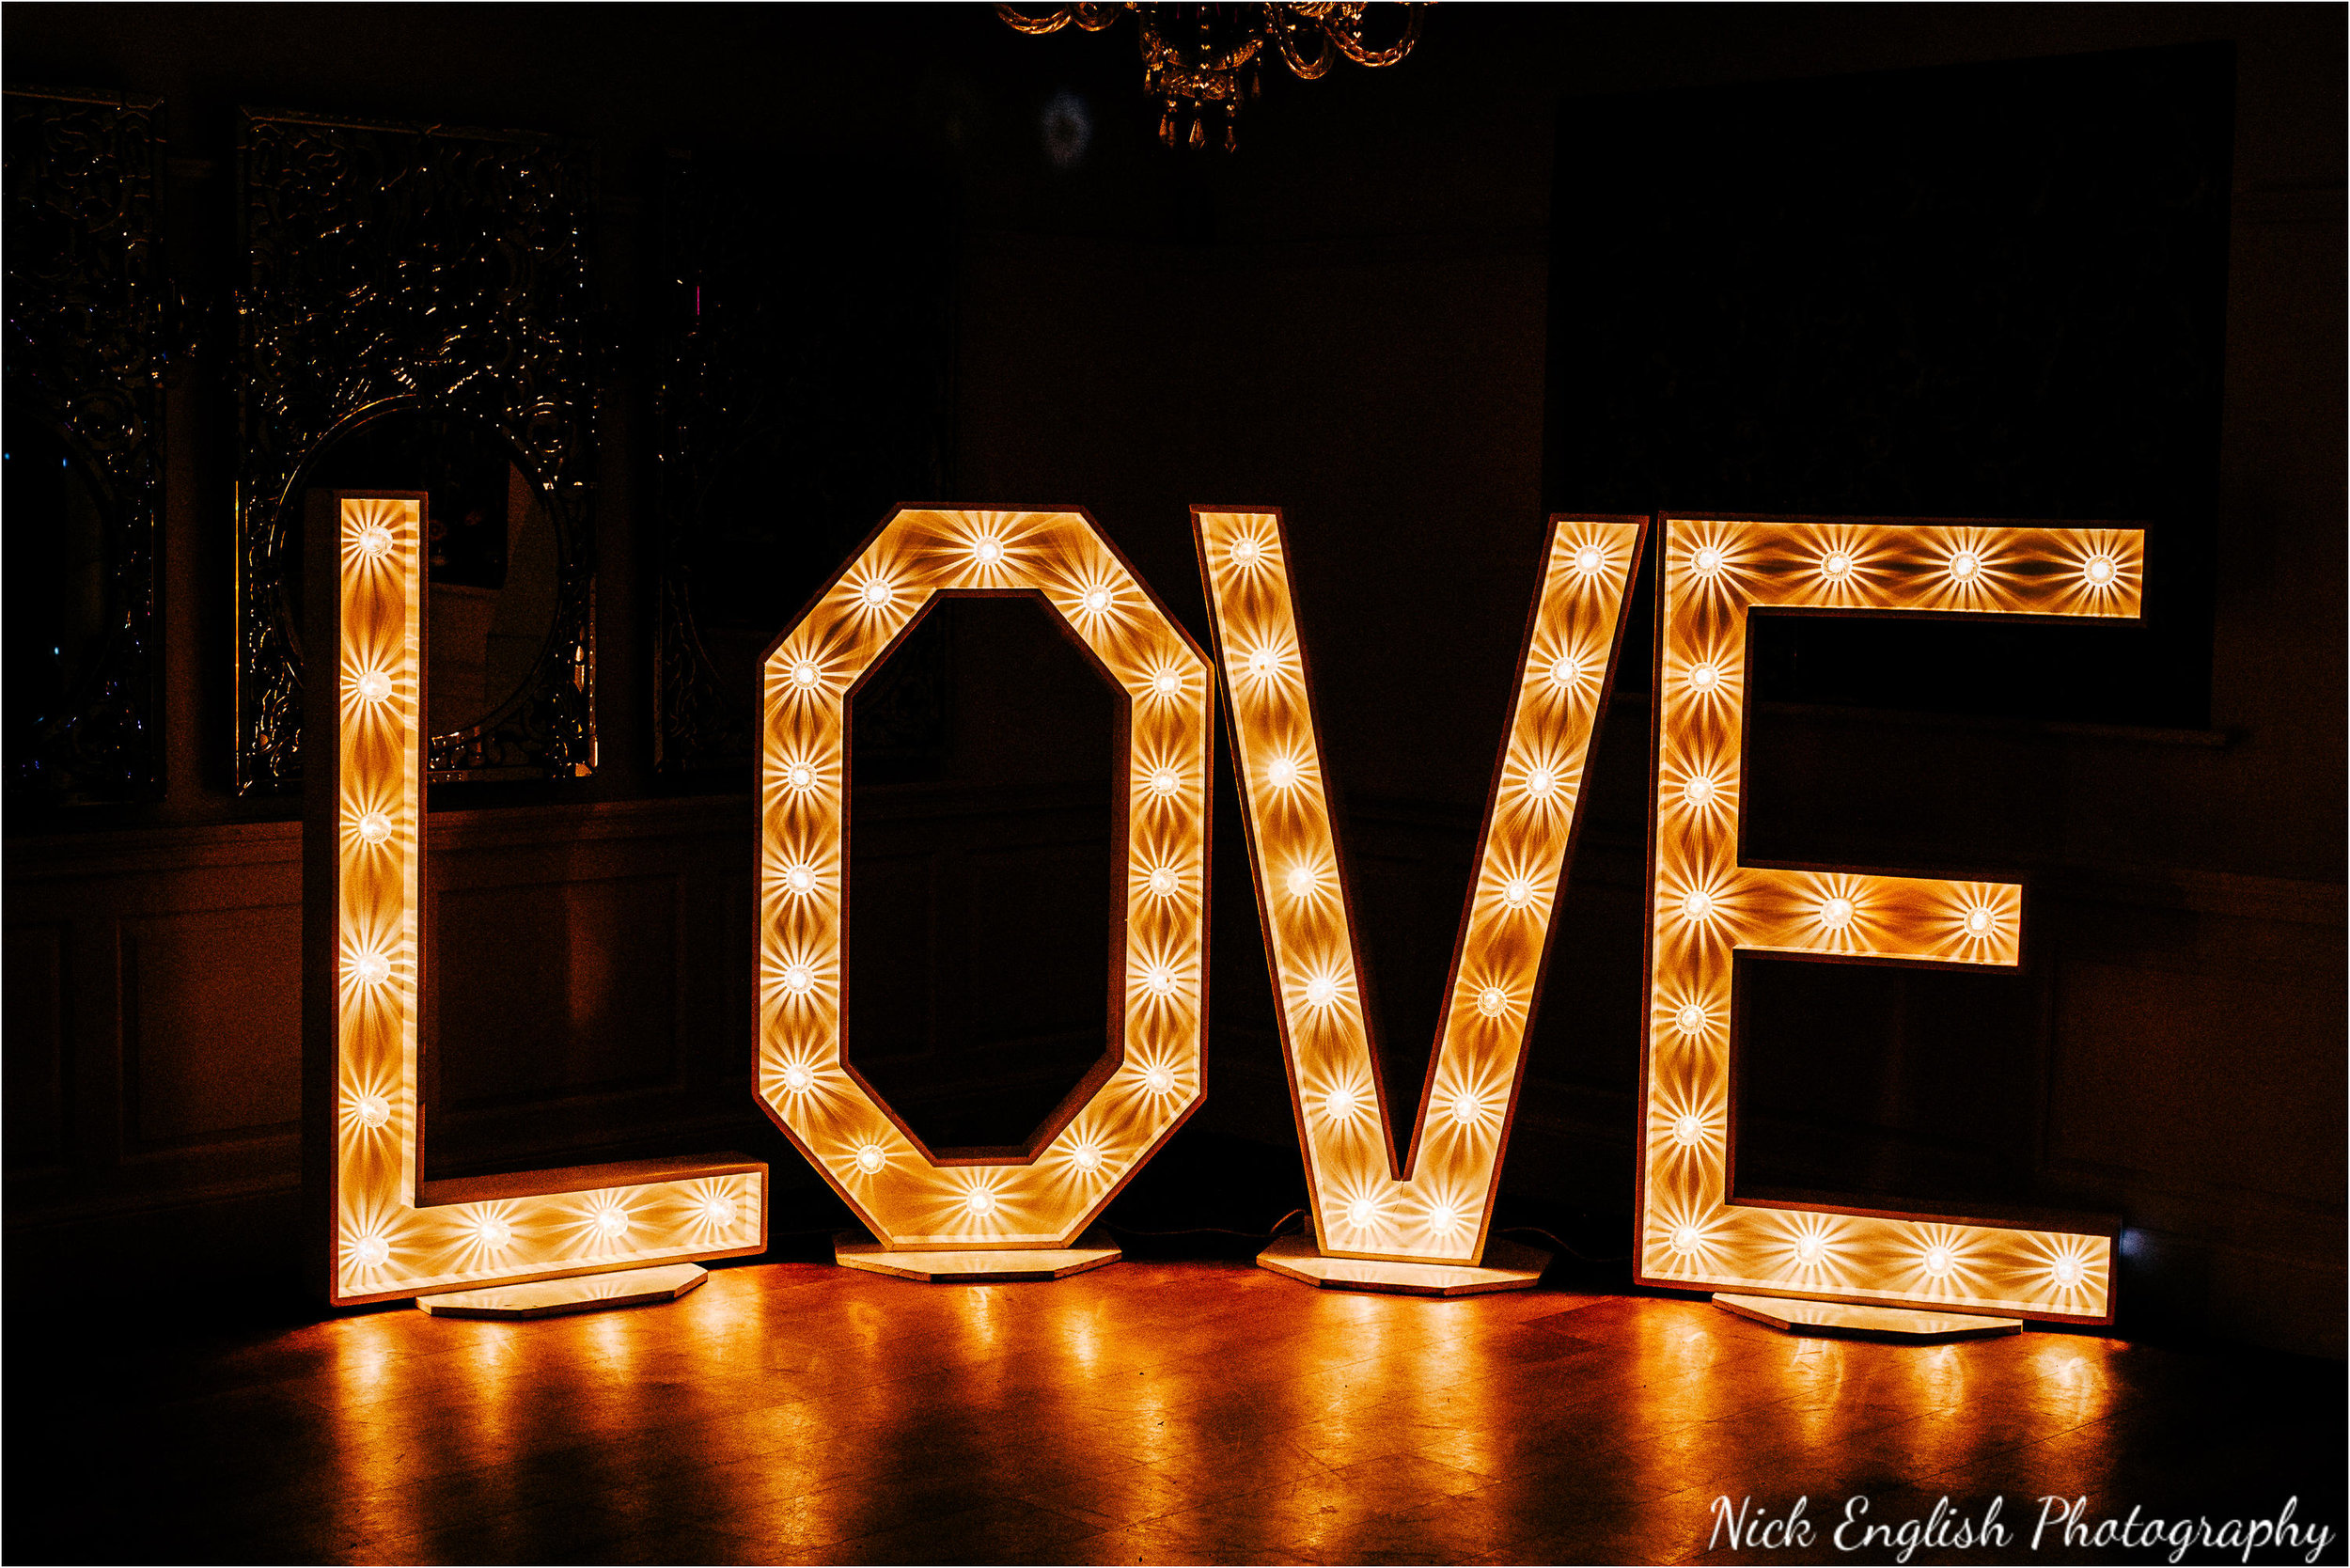 Eaves_Hall_Wedding_Photographs_Nick_English_Photography-221.jpg